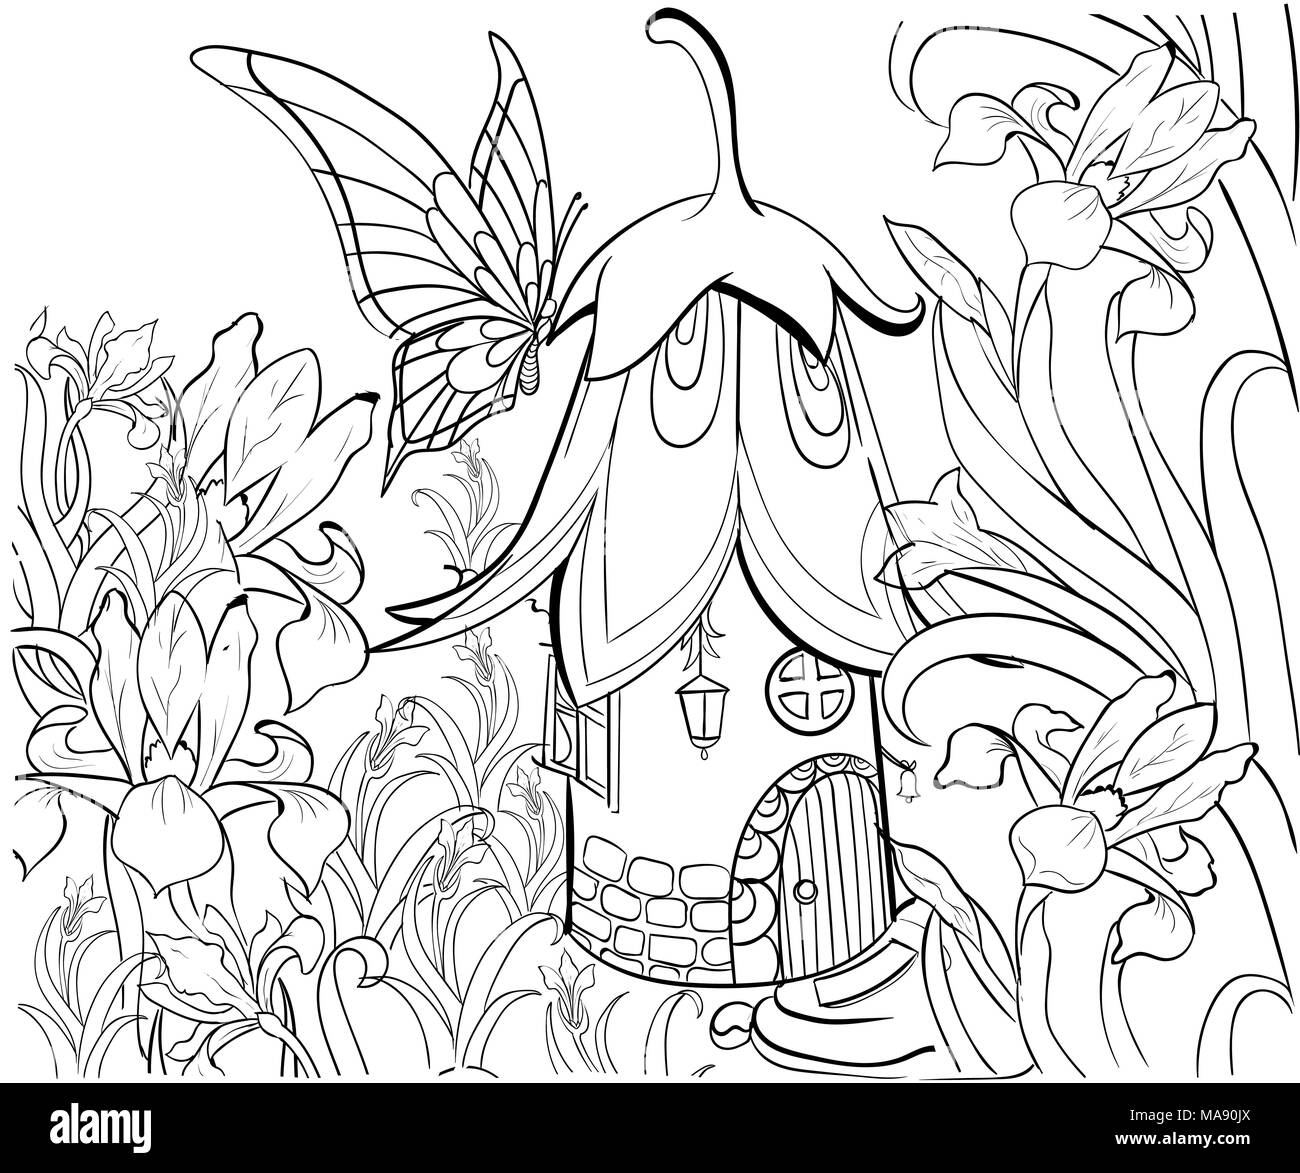 Fairy House For Coloring Book Floral Elements Butterfly And Flowers Anti Stress Adult Tattoo Stencil Zentangle Style Black Whit